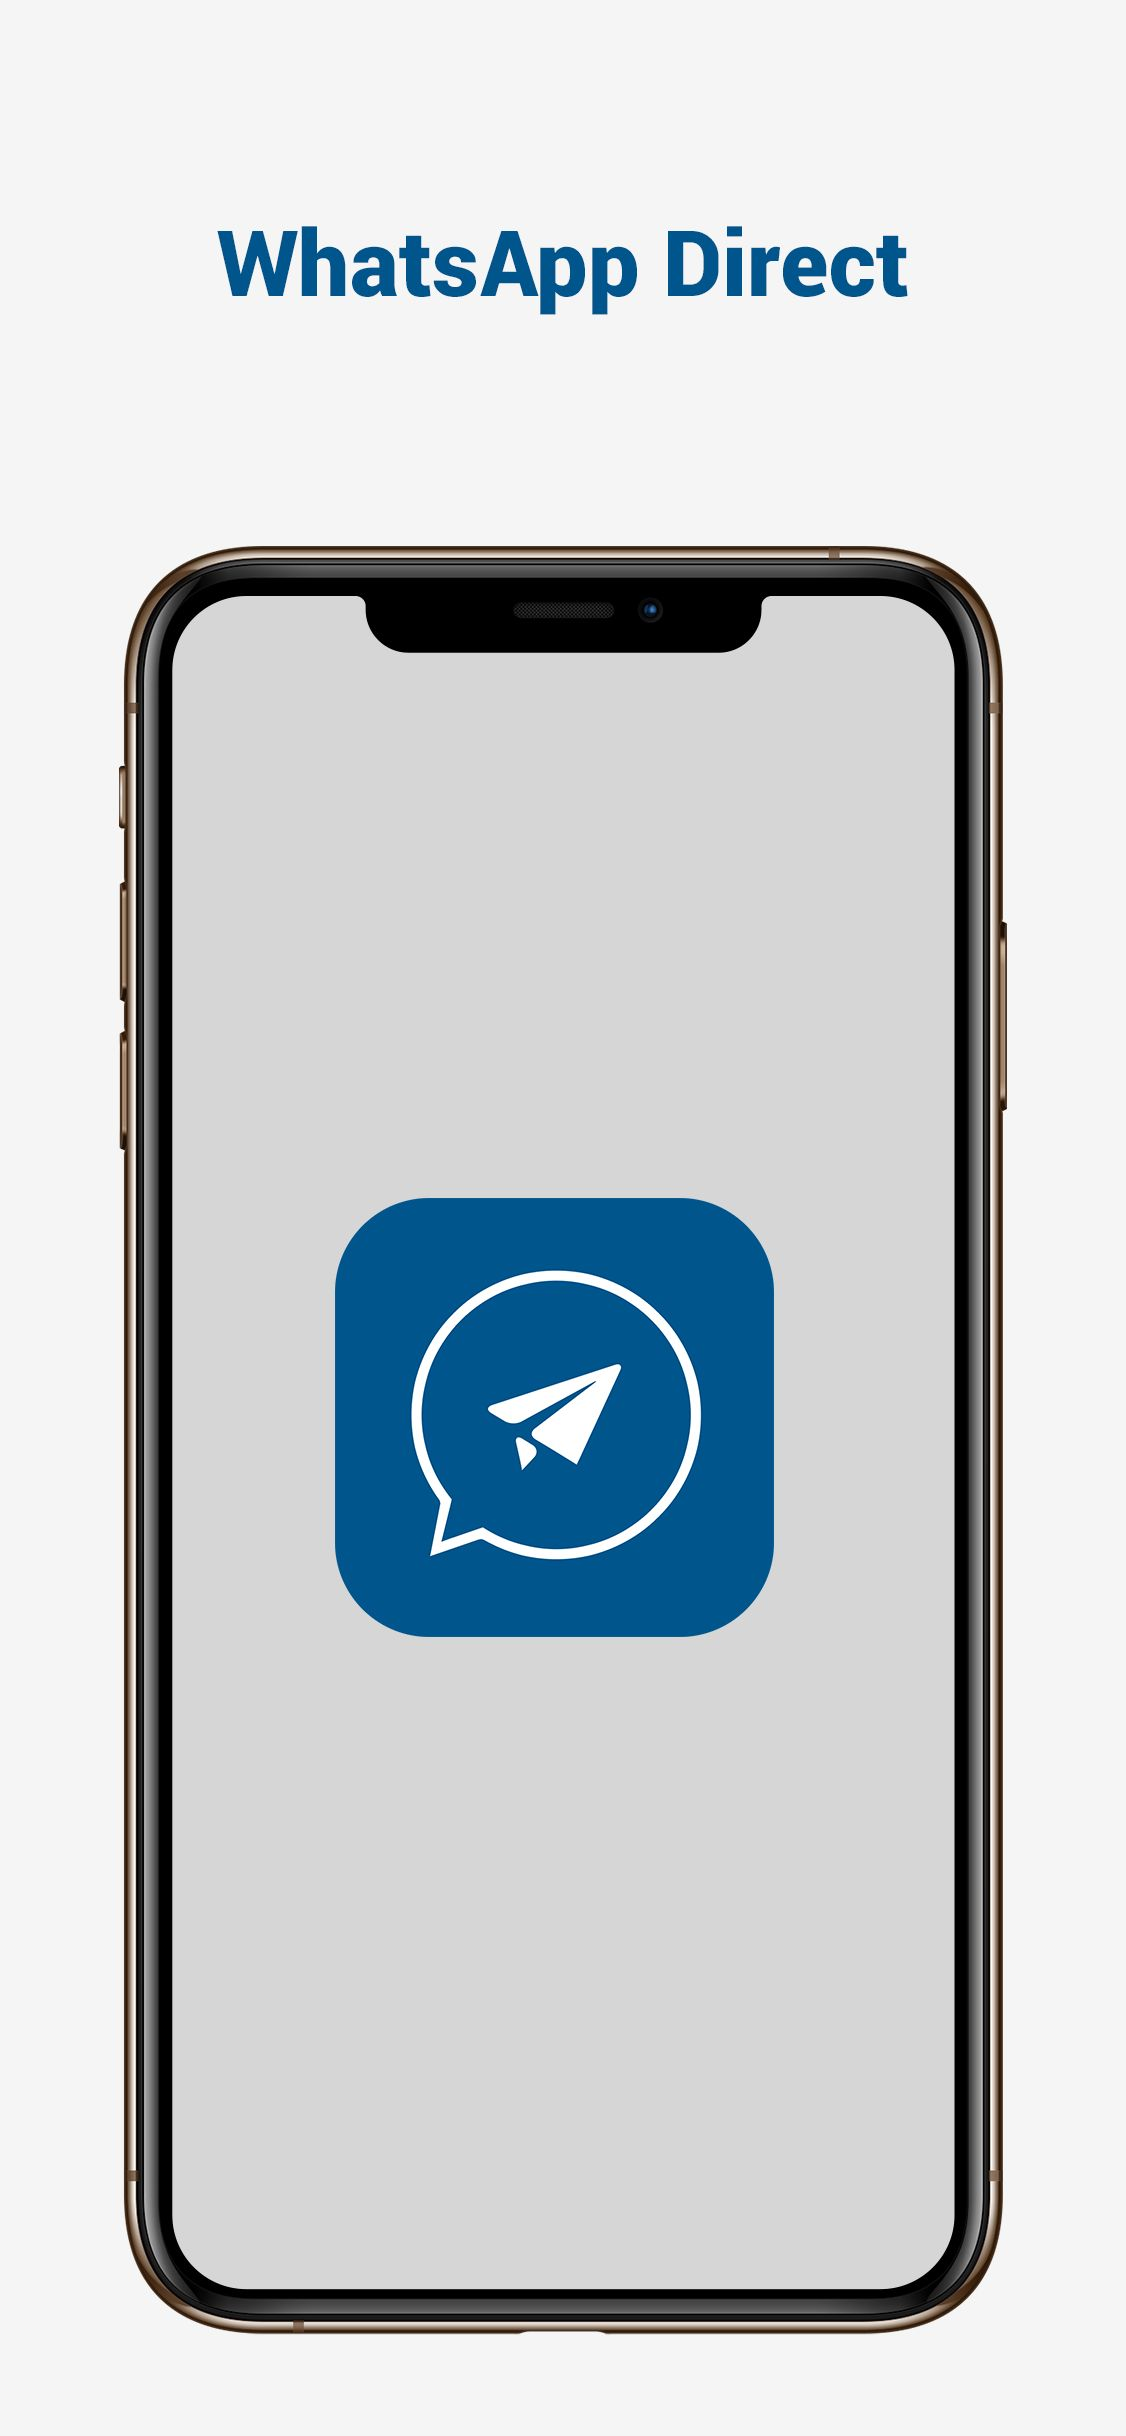 WhatsApp Direct - Send Message Without Contact iOS Screenshot 1